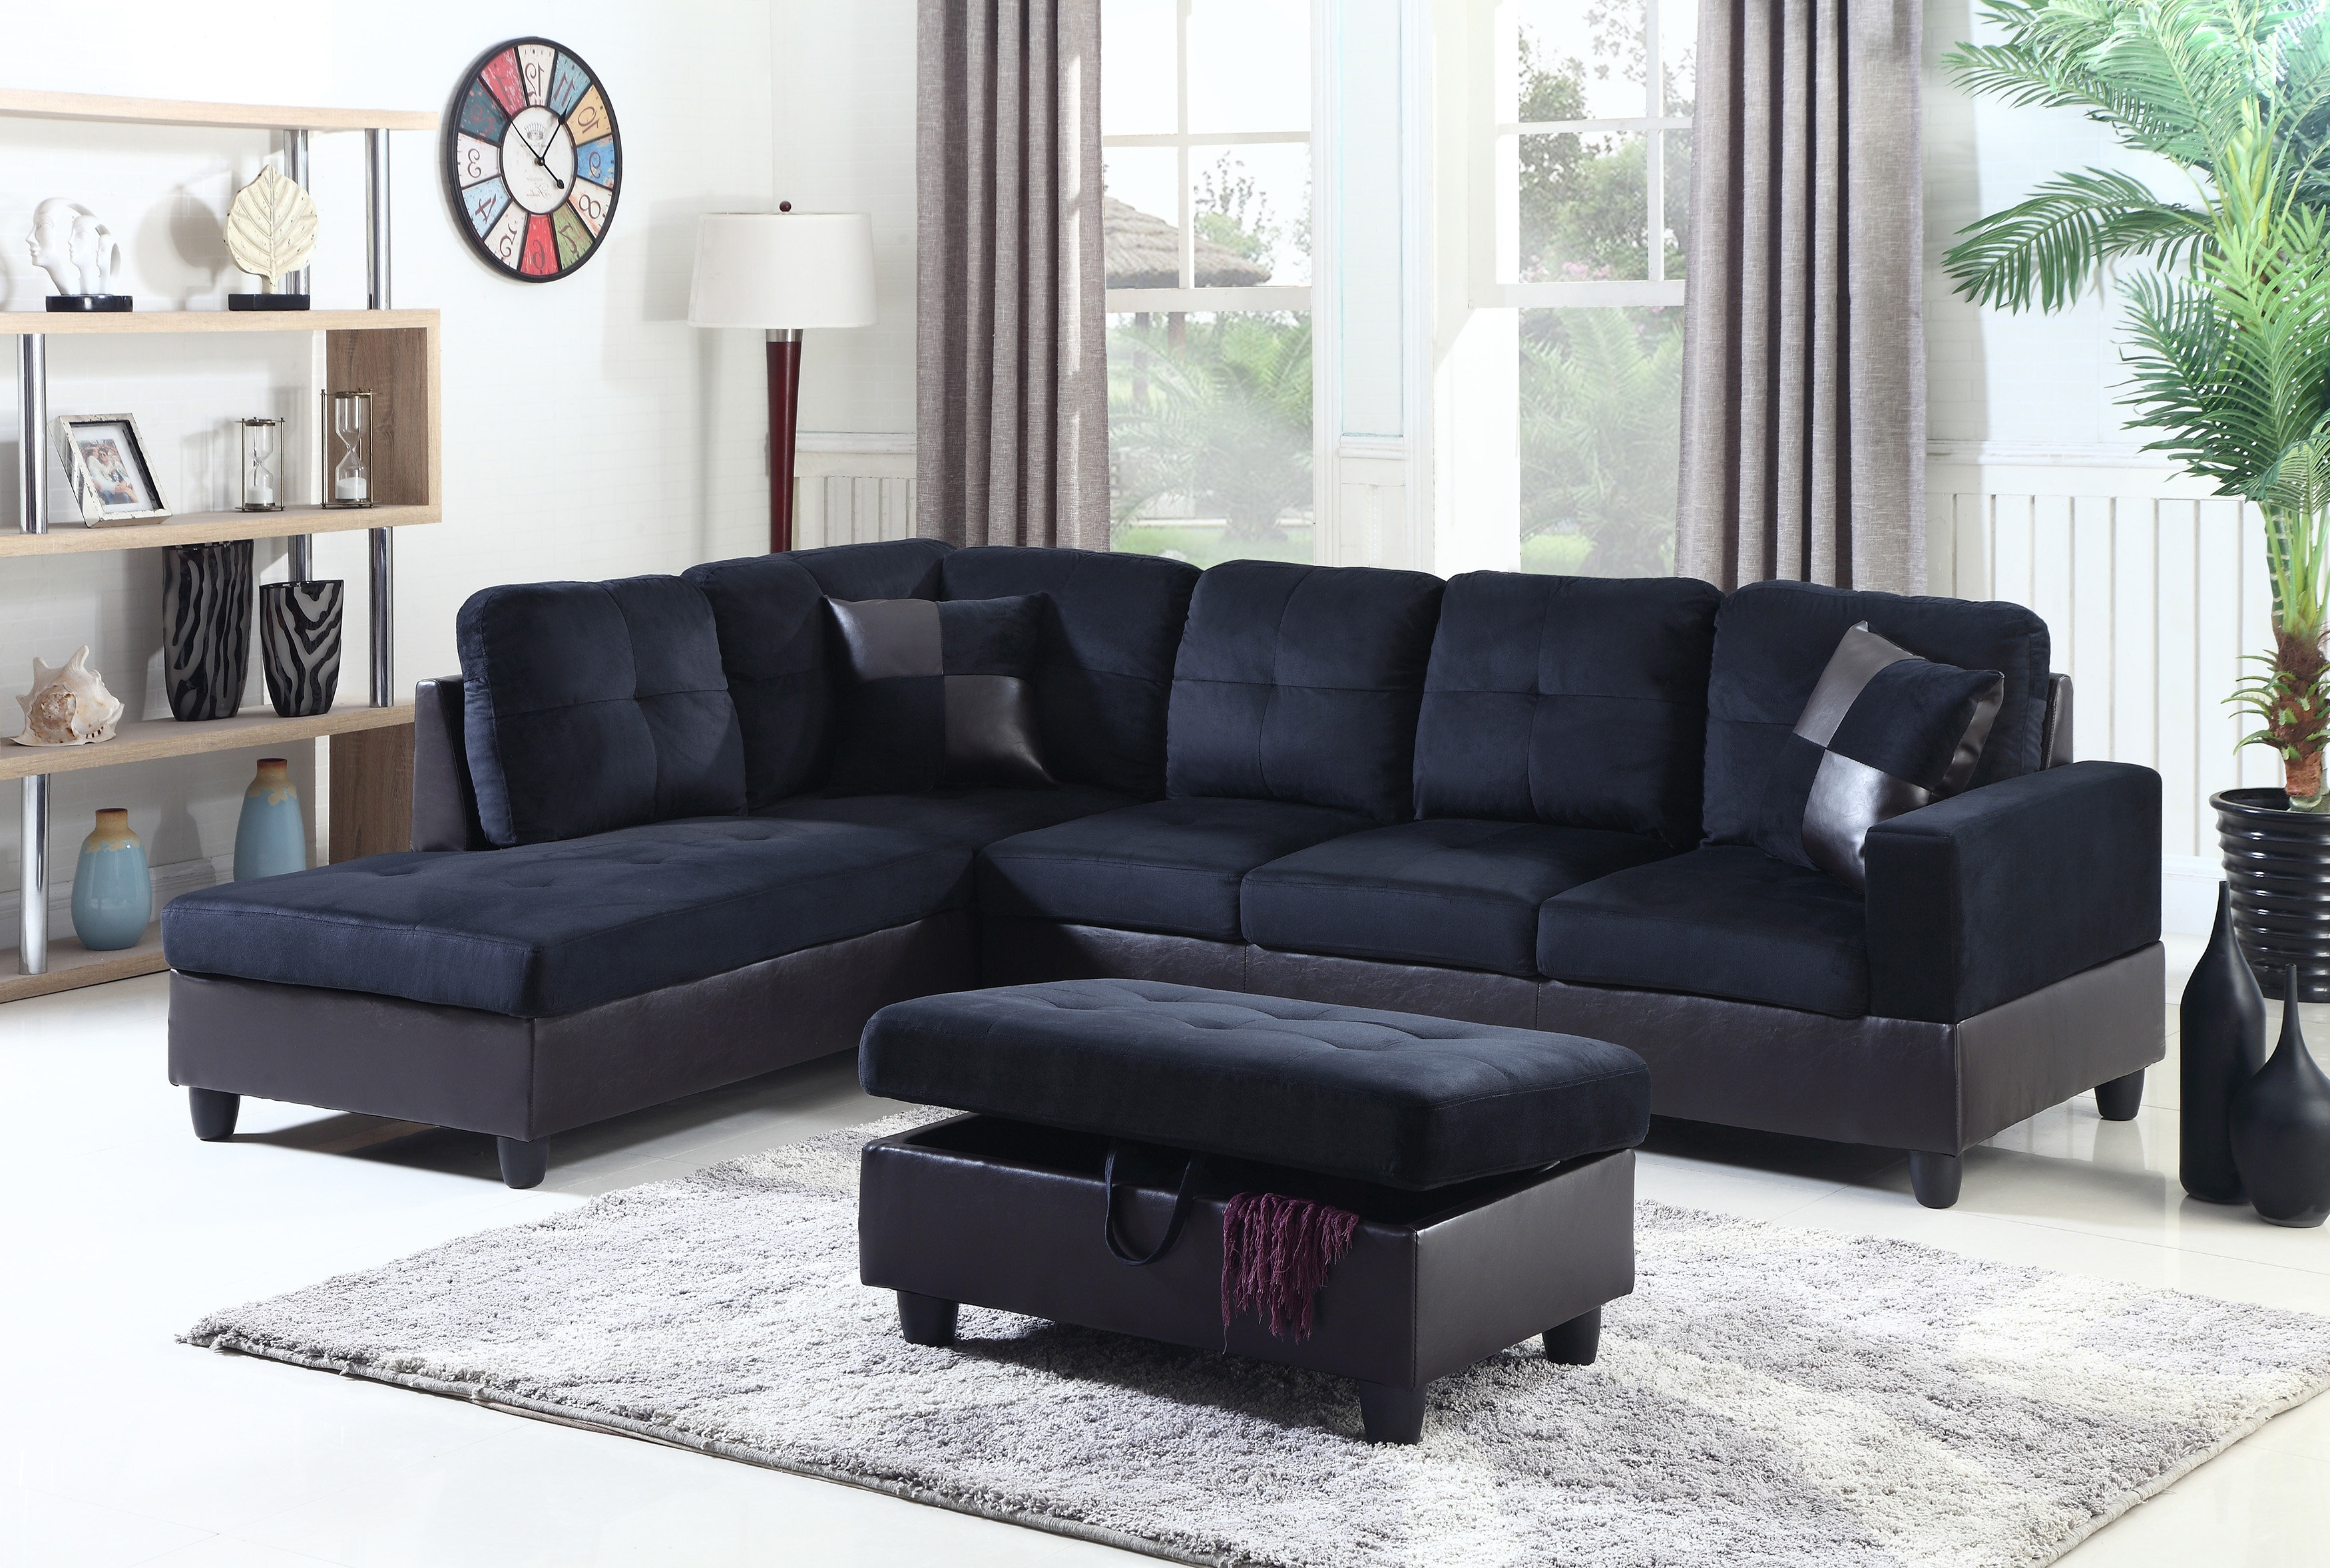 Beverly Fine Furniture Aiden Sectional | Wayfair Inside Aidan 4 Piece Sectionals (View 15 of 25)